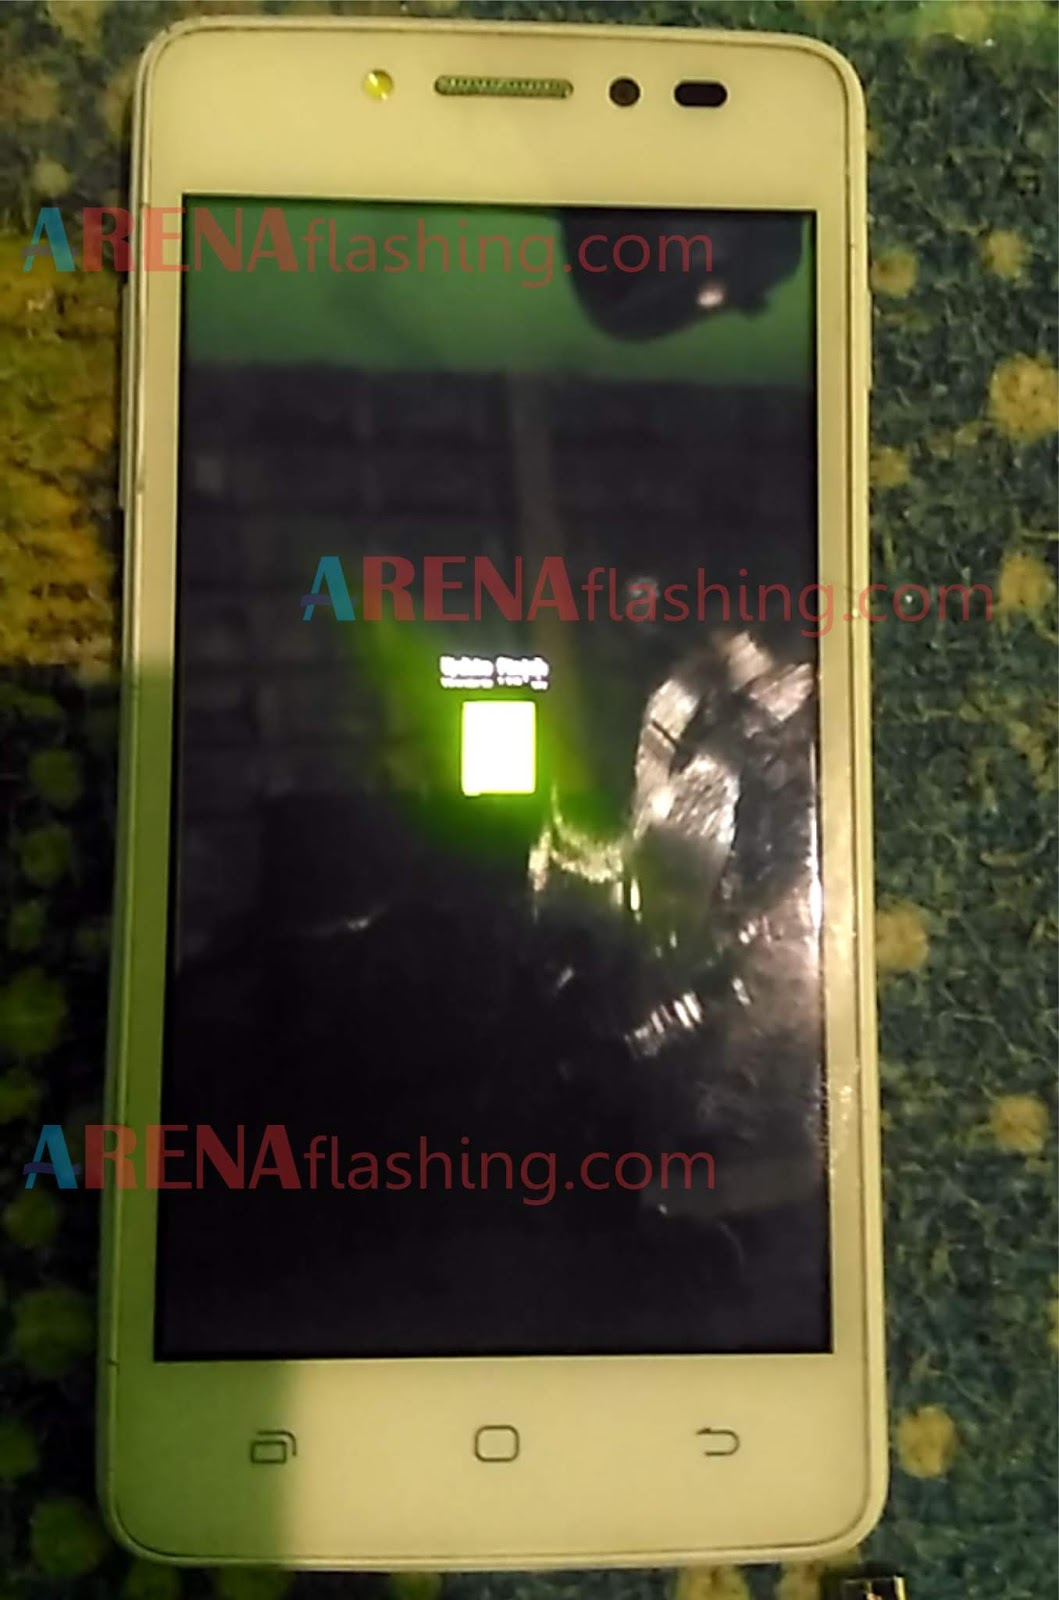 Flash Andromax E2 Via Pc : flash, andromax, Memasang, Andromax, B16C2H, Mudah, Tanpa, Tutorial, Flashing, Android, Upgrade, Downgrade, Firmware, Unbrick